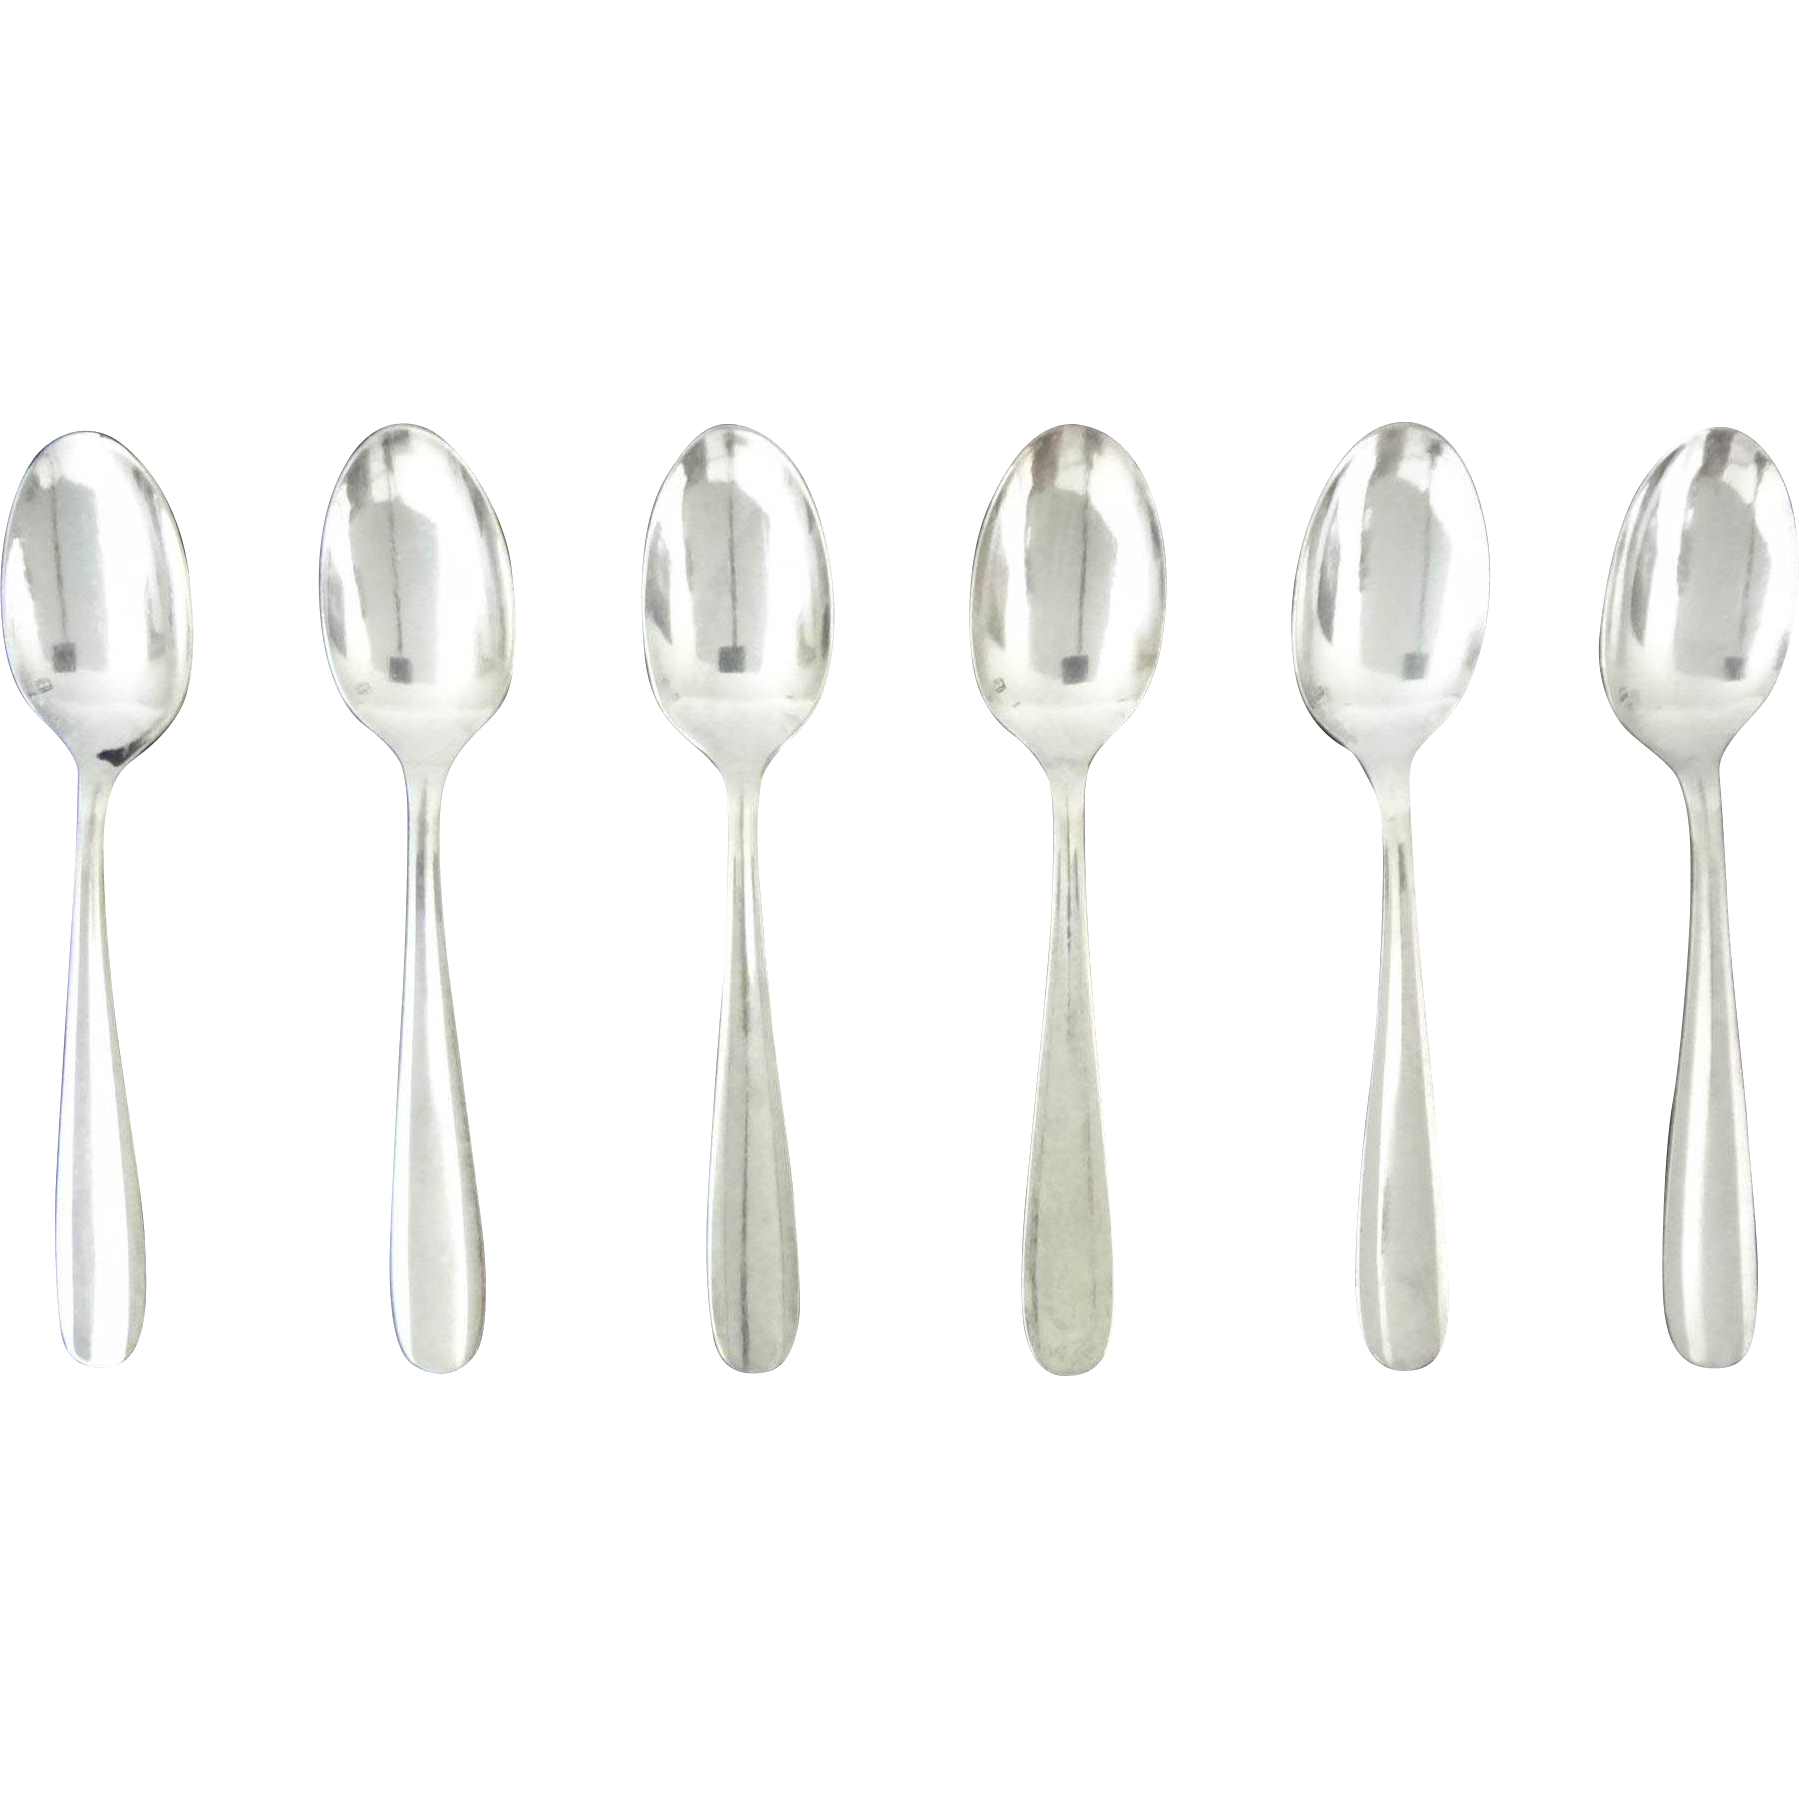 Set 6 Christofle Silver Plate Demi Tasse Spoons Modern Pattern - 20th Century, France